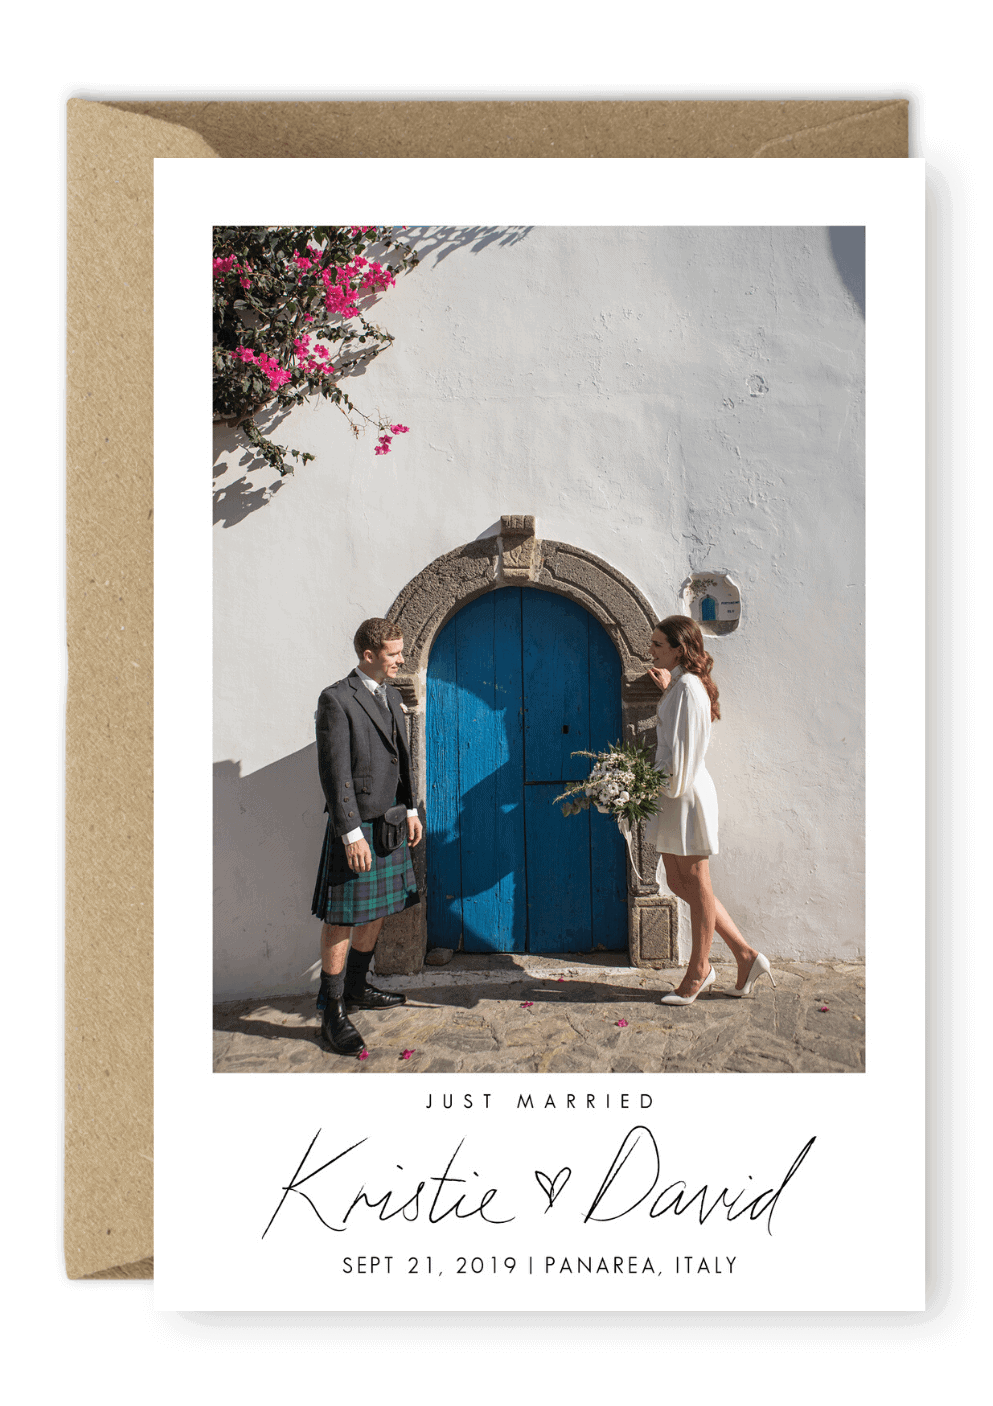 Elopement Cards Photo Wedding Elopement Announcements For the Love of Stationery Karen Boscolo Photography